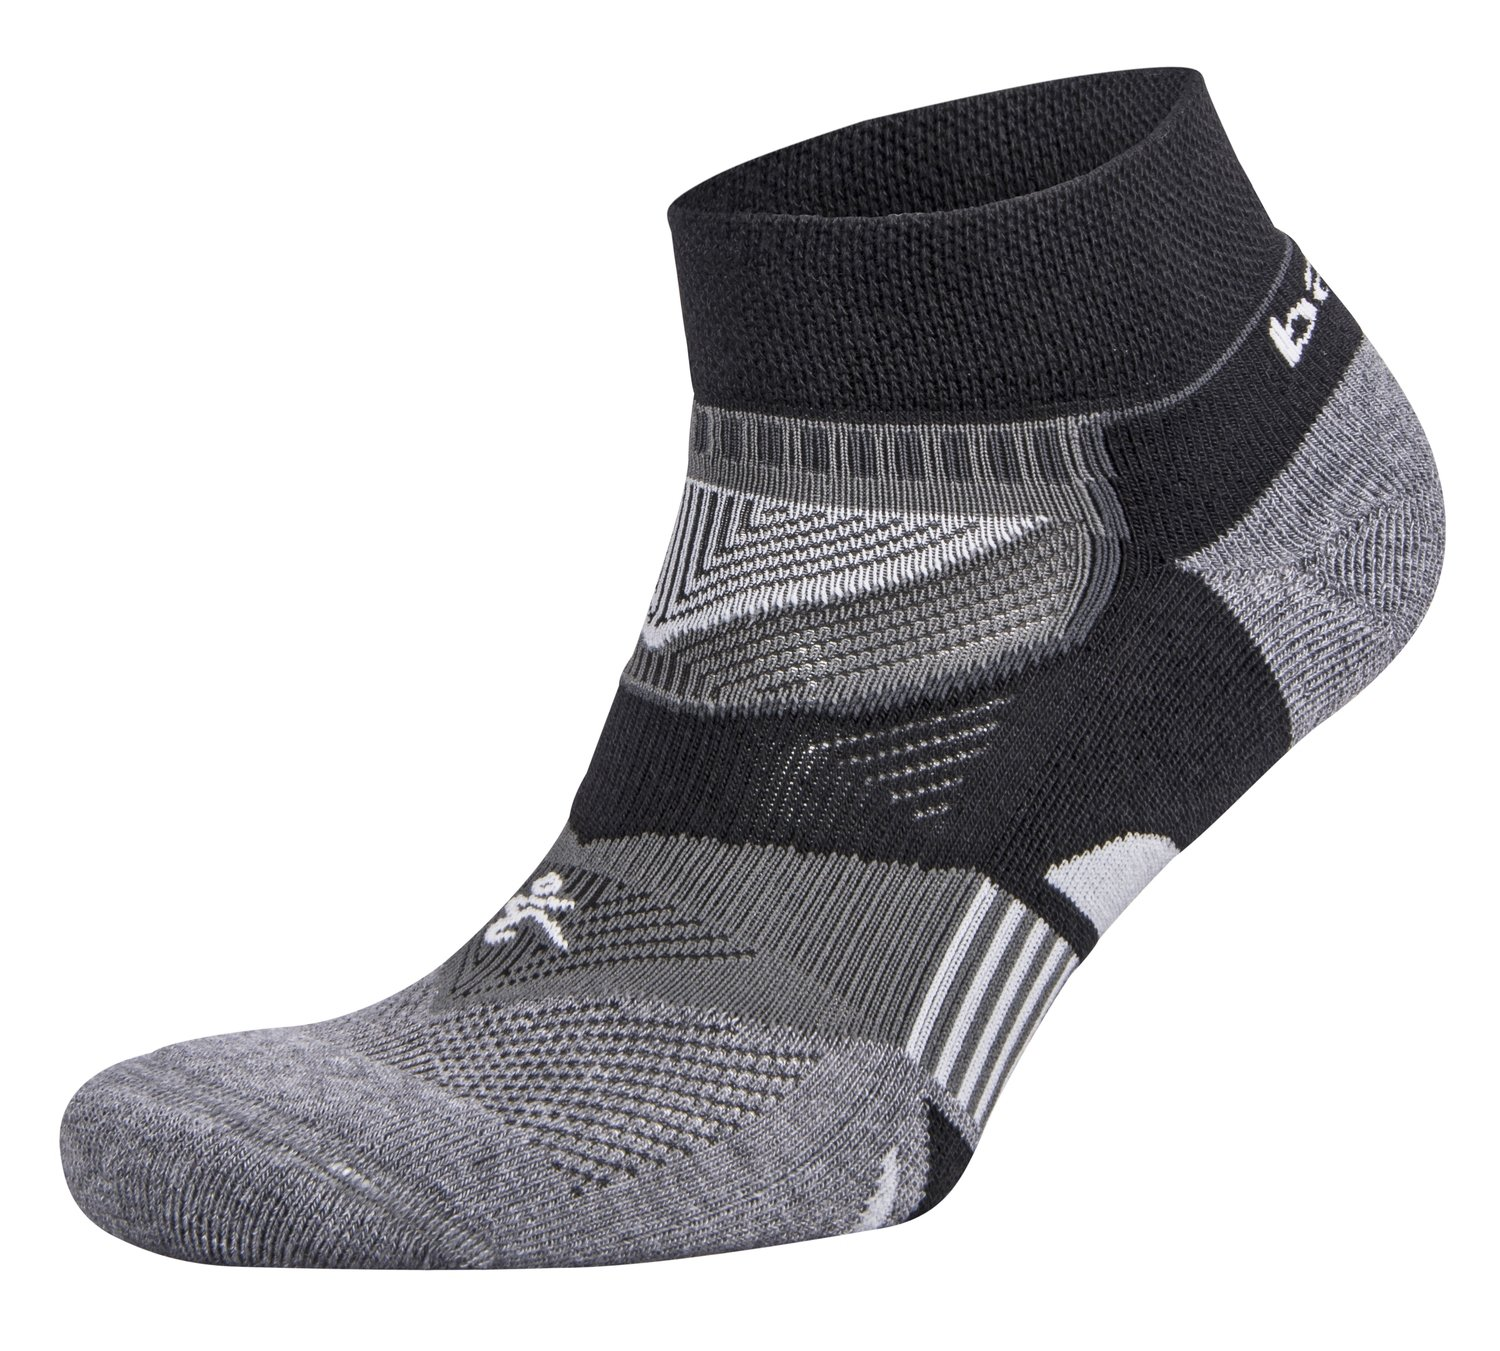 Enduro Low Cut Socks Black/Grey